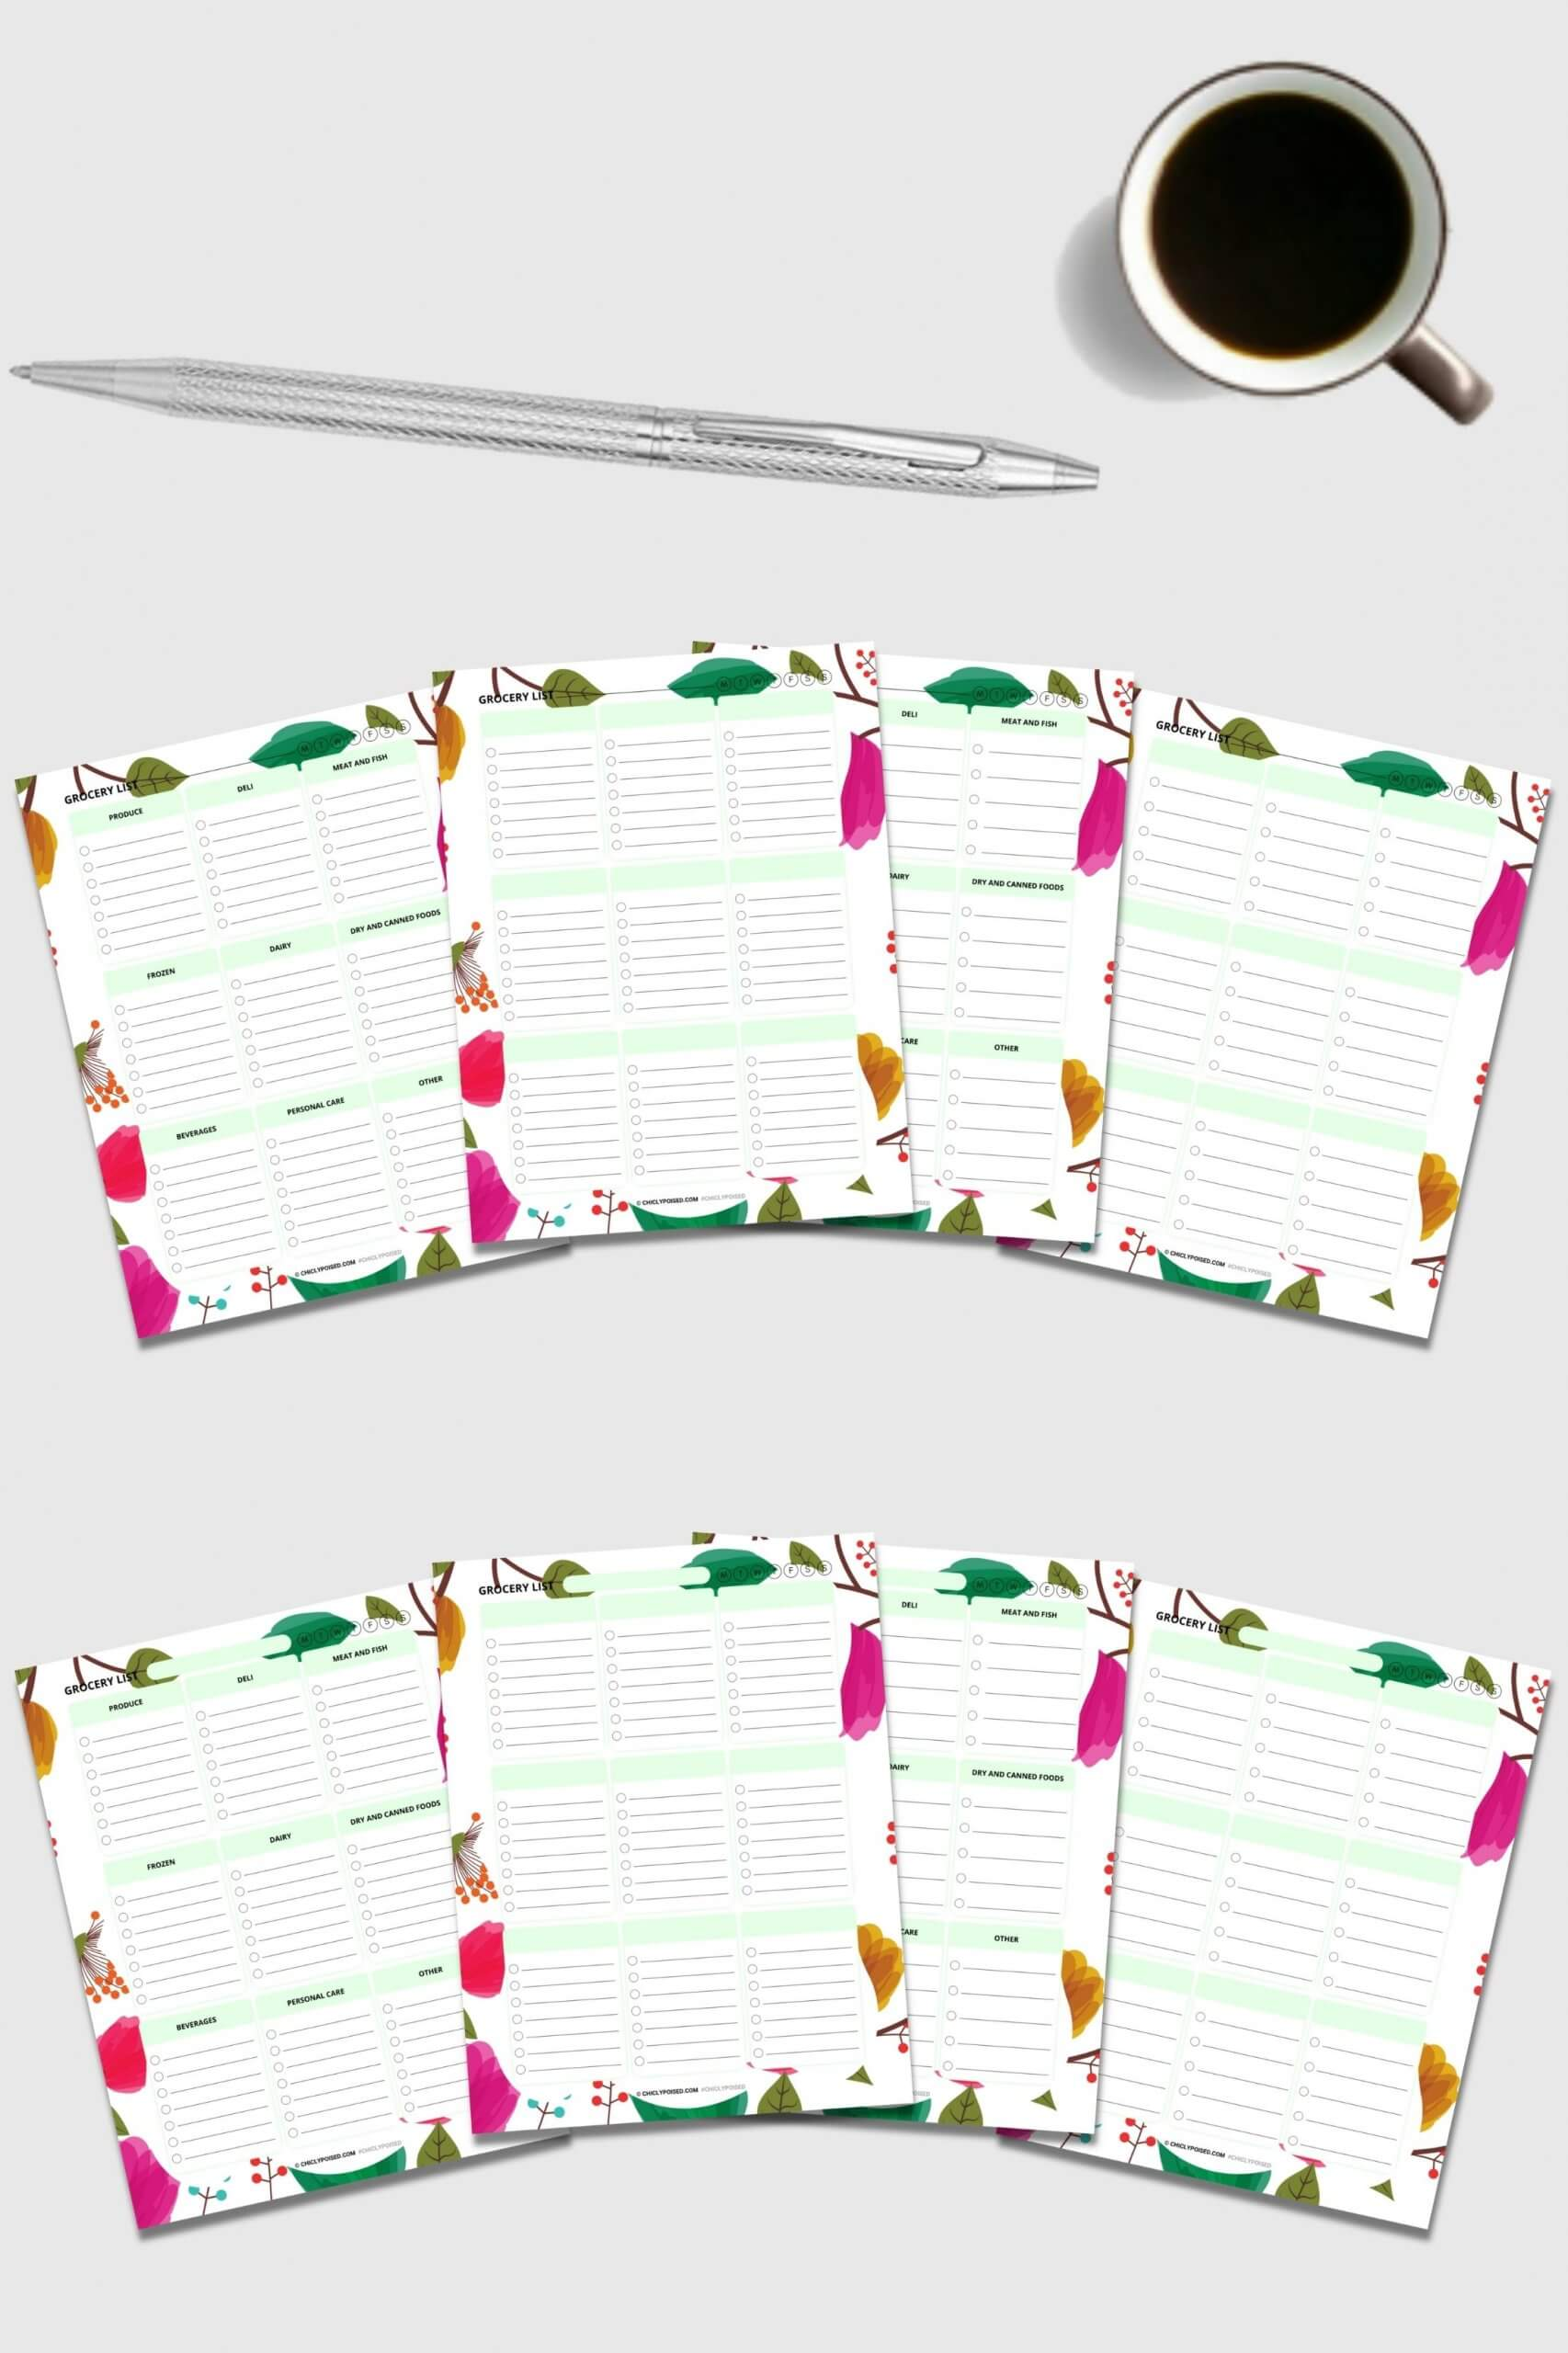 Grocery Lists Printable 2 of 3